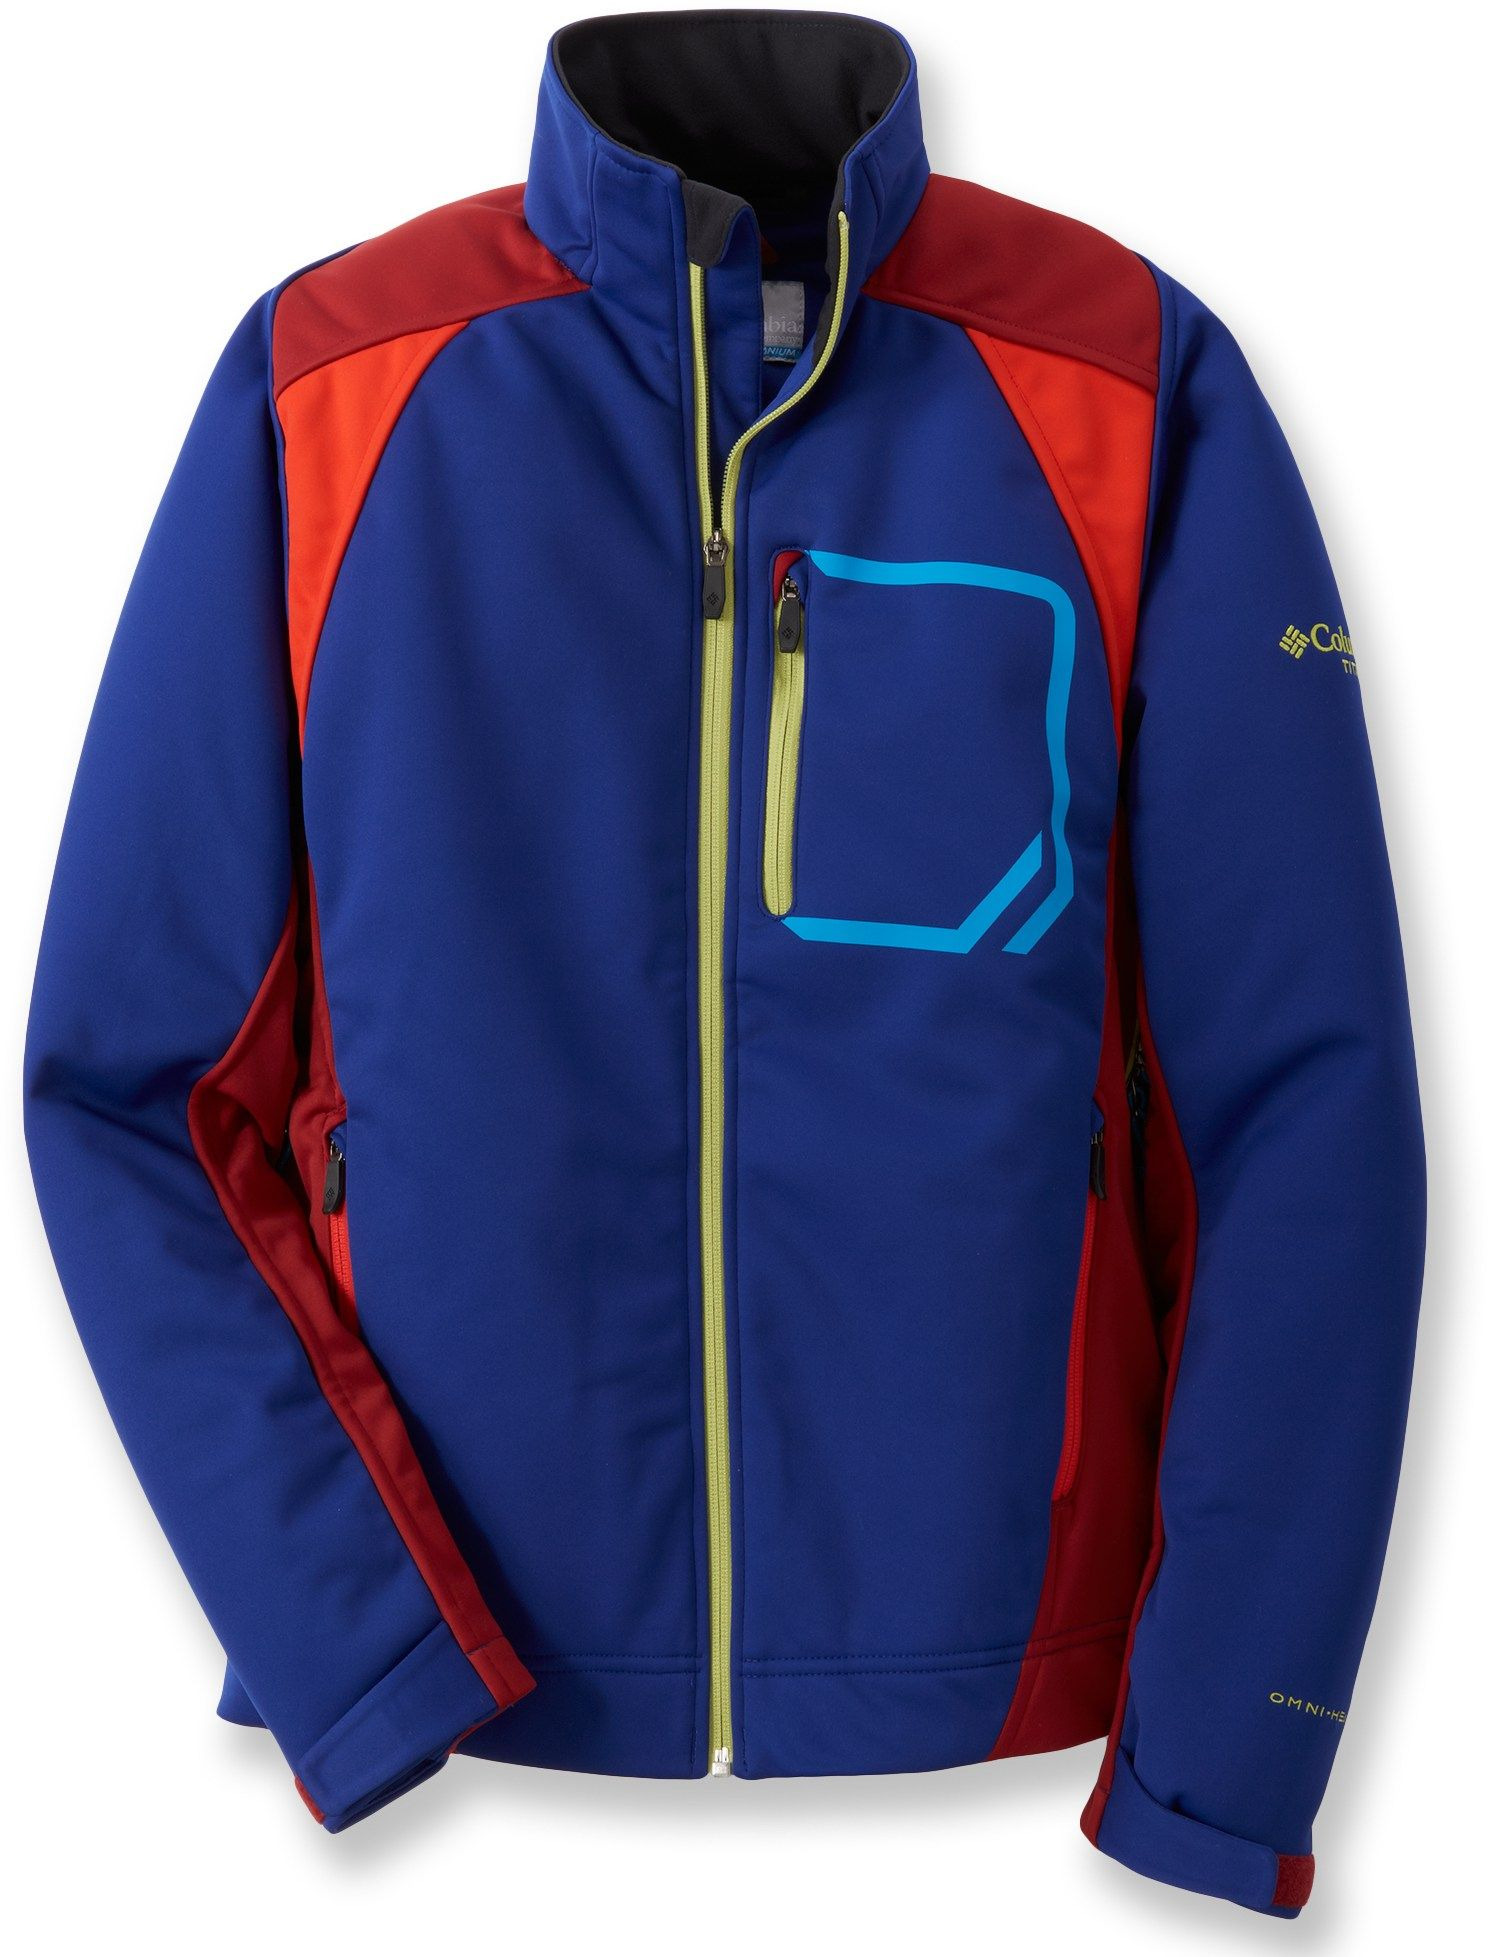 Columbia Key Three Soft-Shell Jacket - Men's - 2012 Closeout - Free Shipping at REI-OUTLET.com